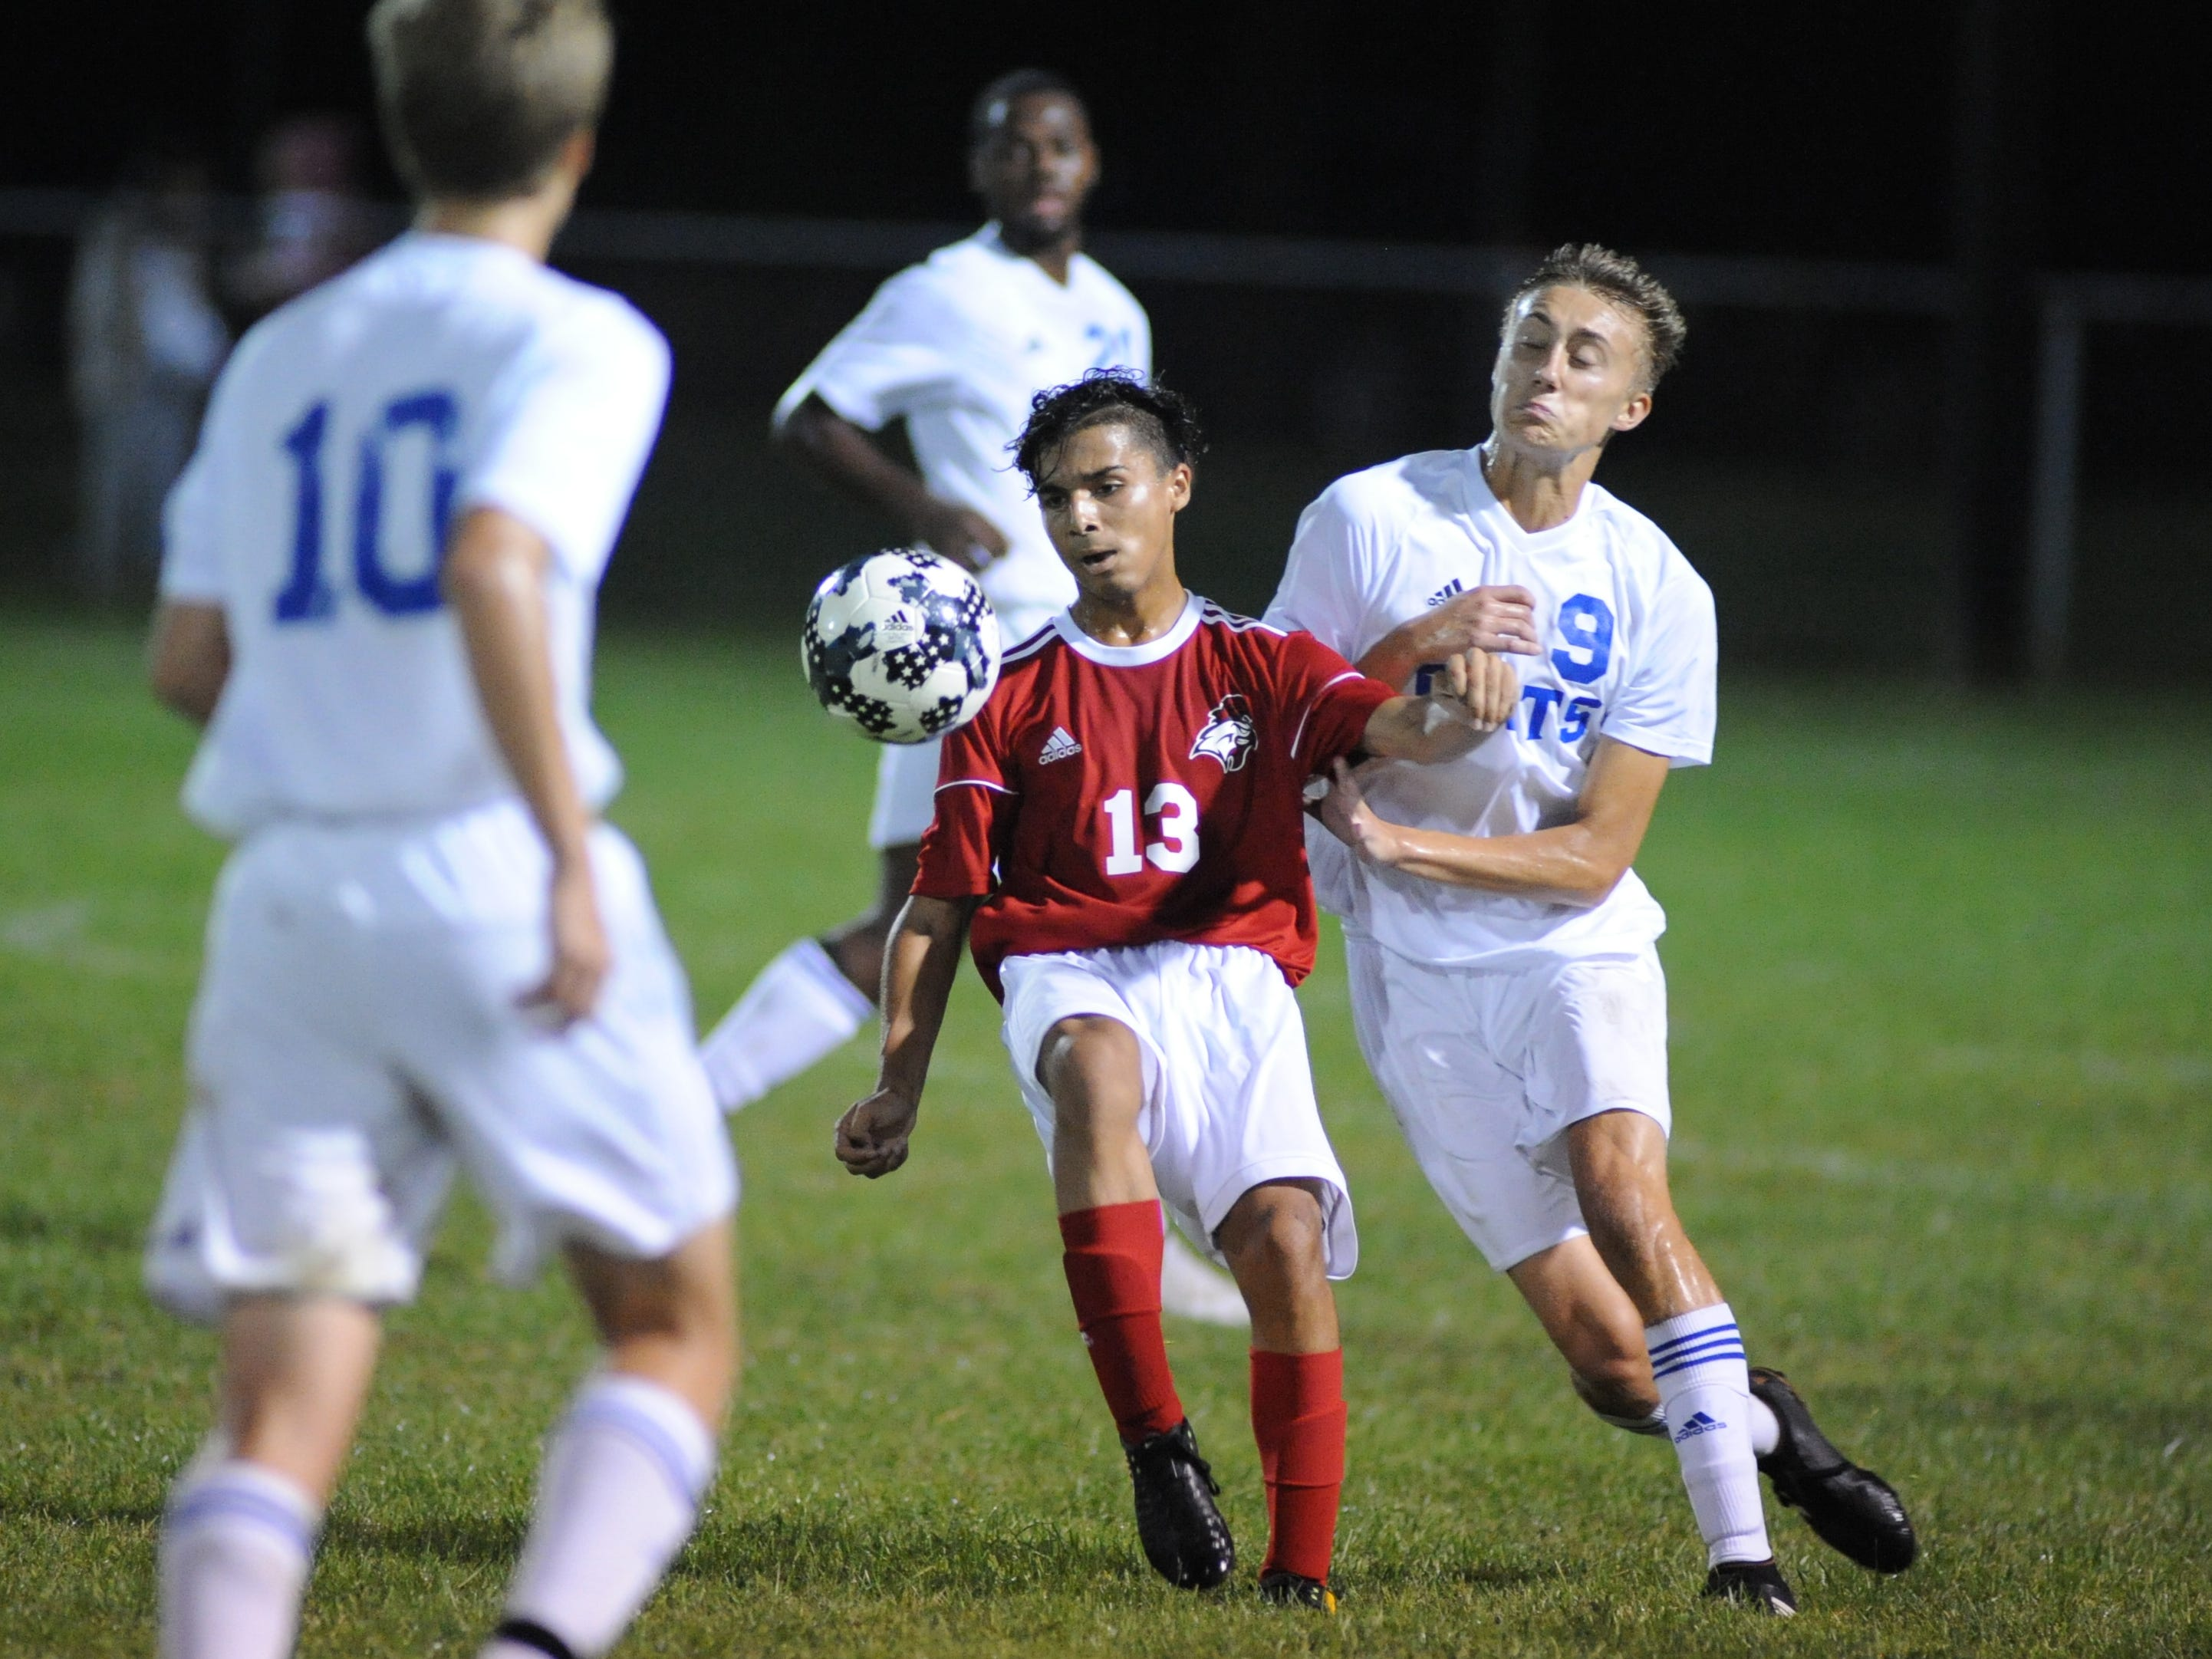 Vineland's Usmar Barrera moves the ball with Millville's William Muhlbaier defending during a boys soccer game at Romano Sports Complex in Vineland, Monday, Sept. 17, 2018.